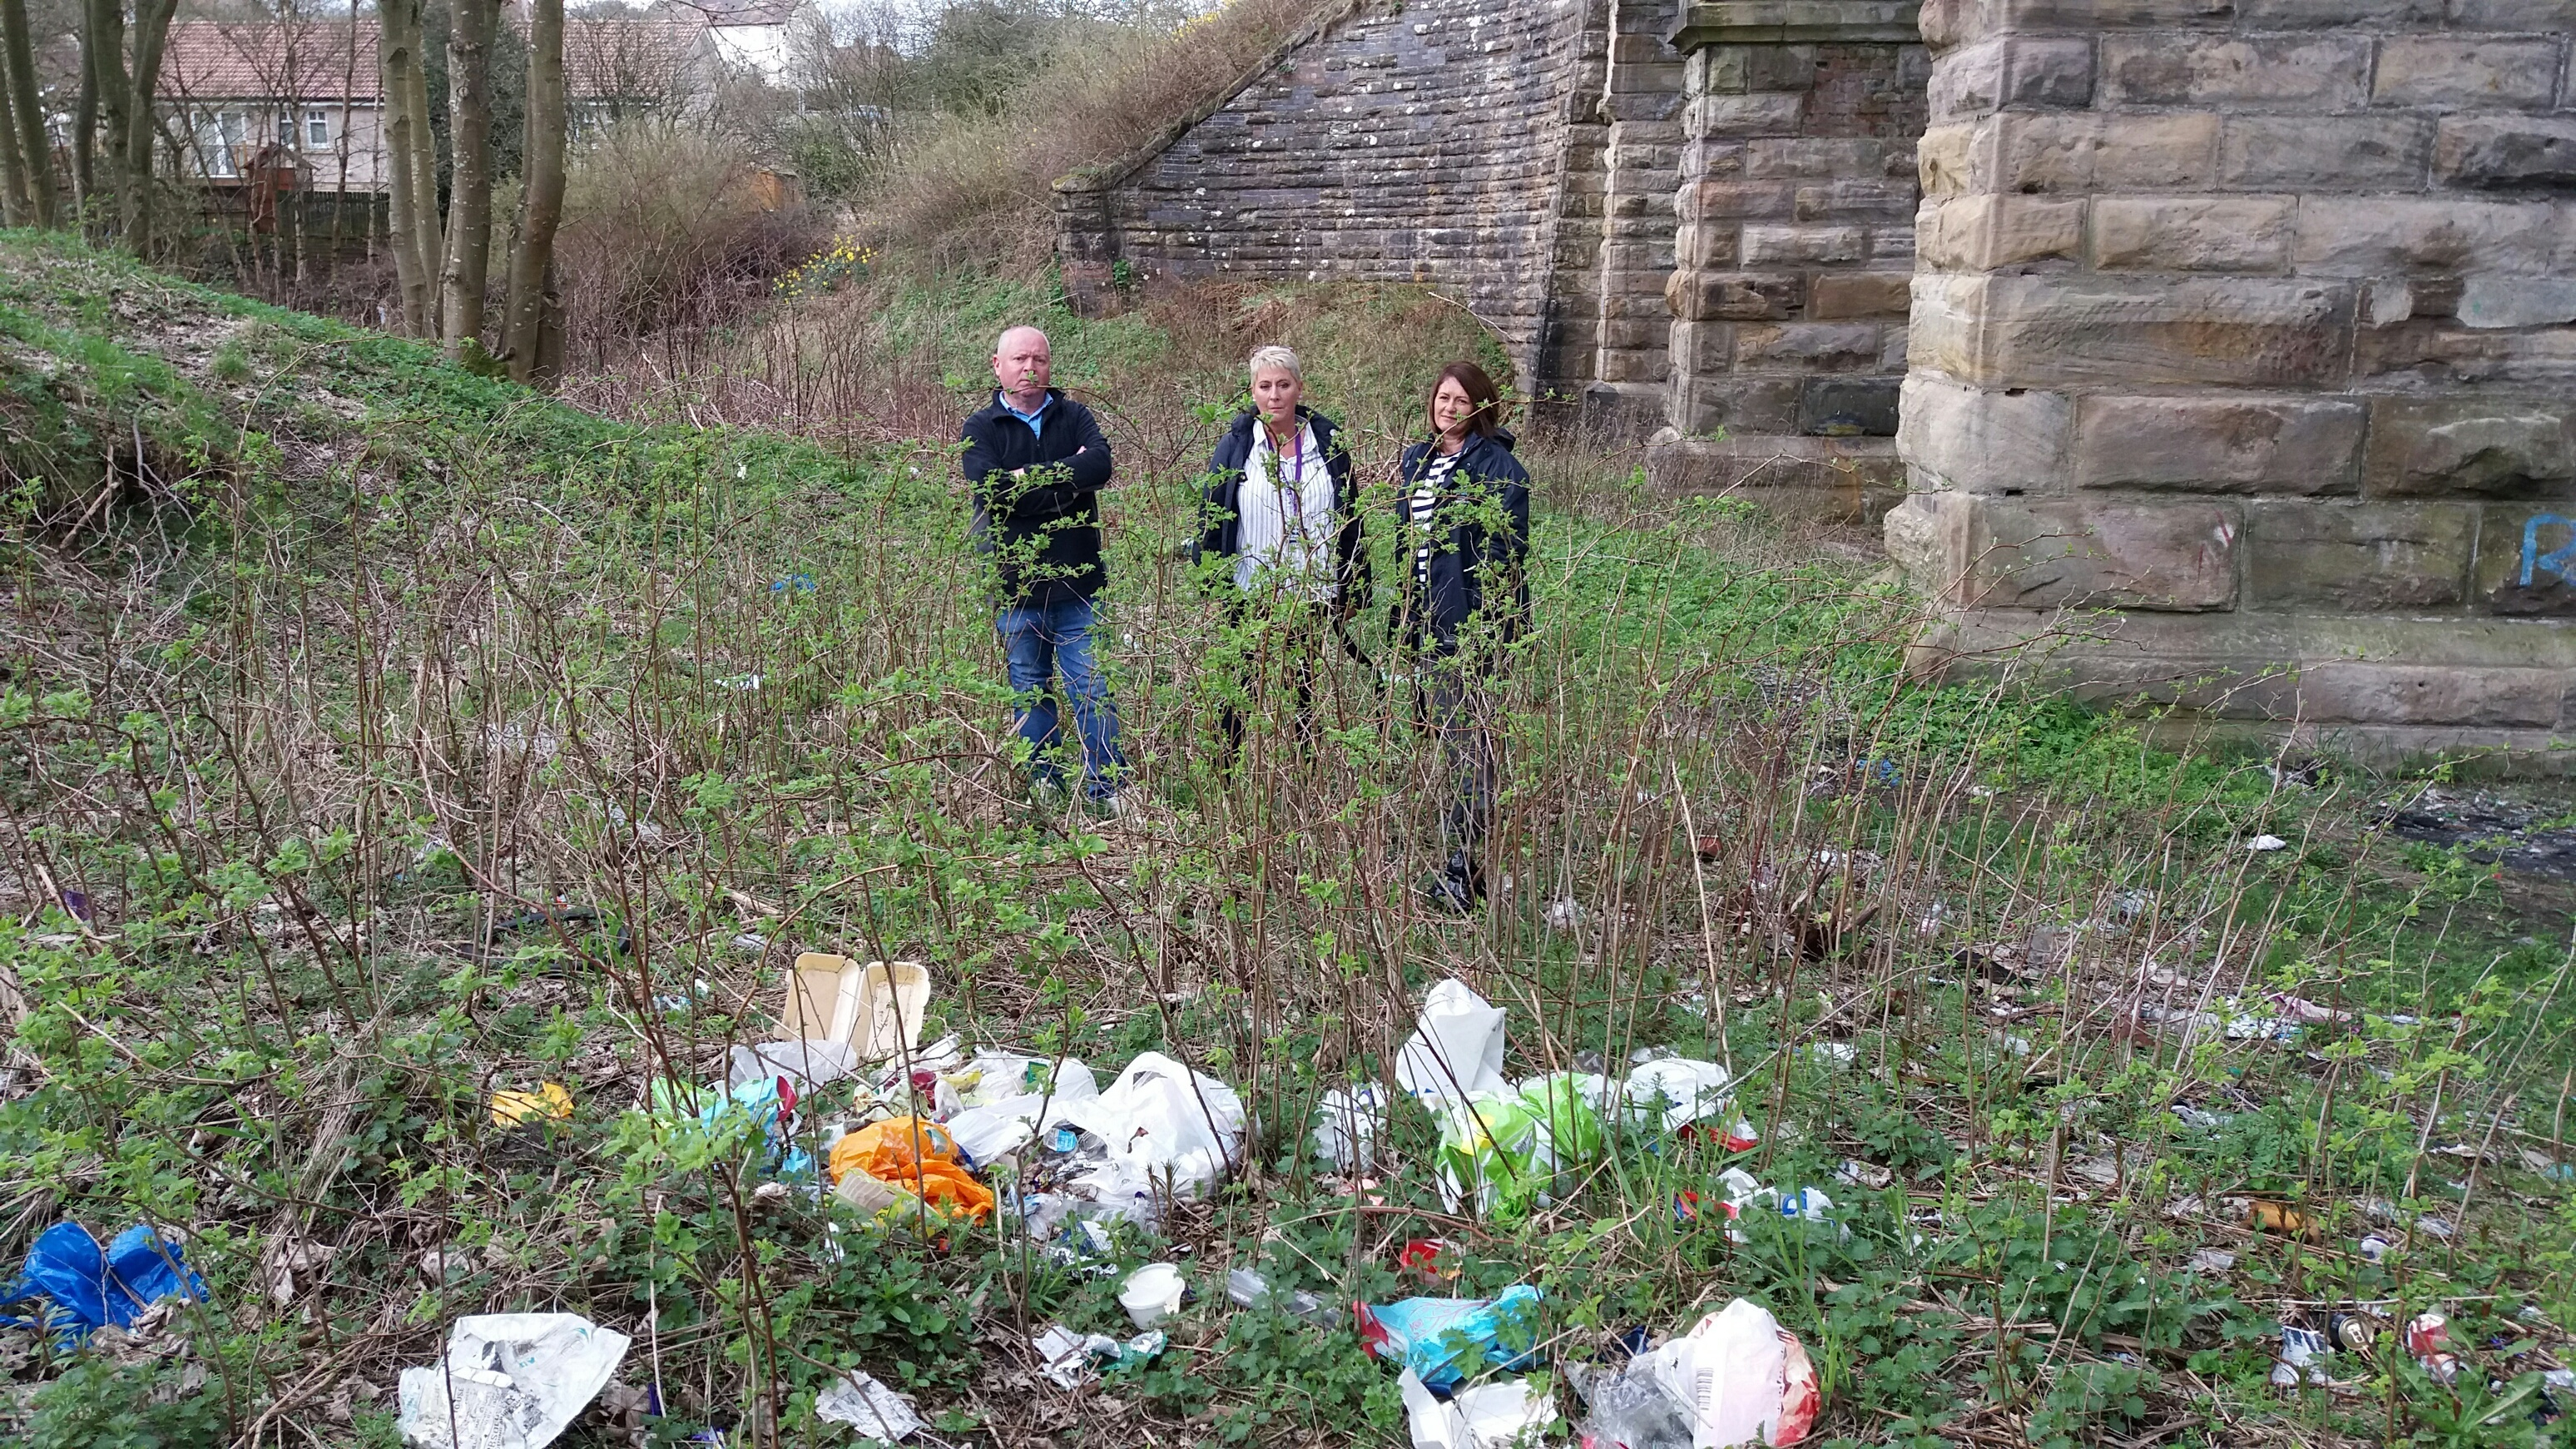 Dave Roy, Councillor Liewald and Catriona Henderson of the community payback project inspect the mess